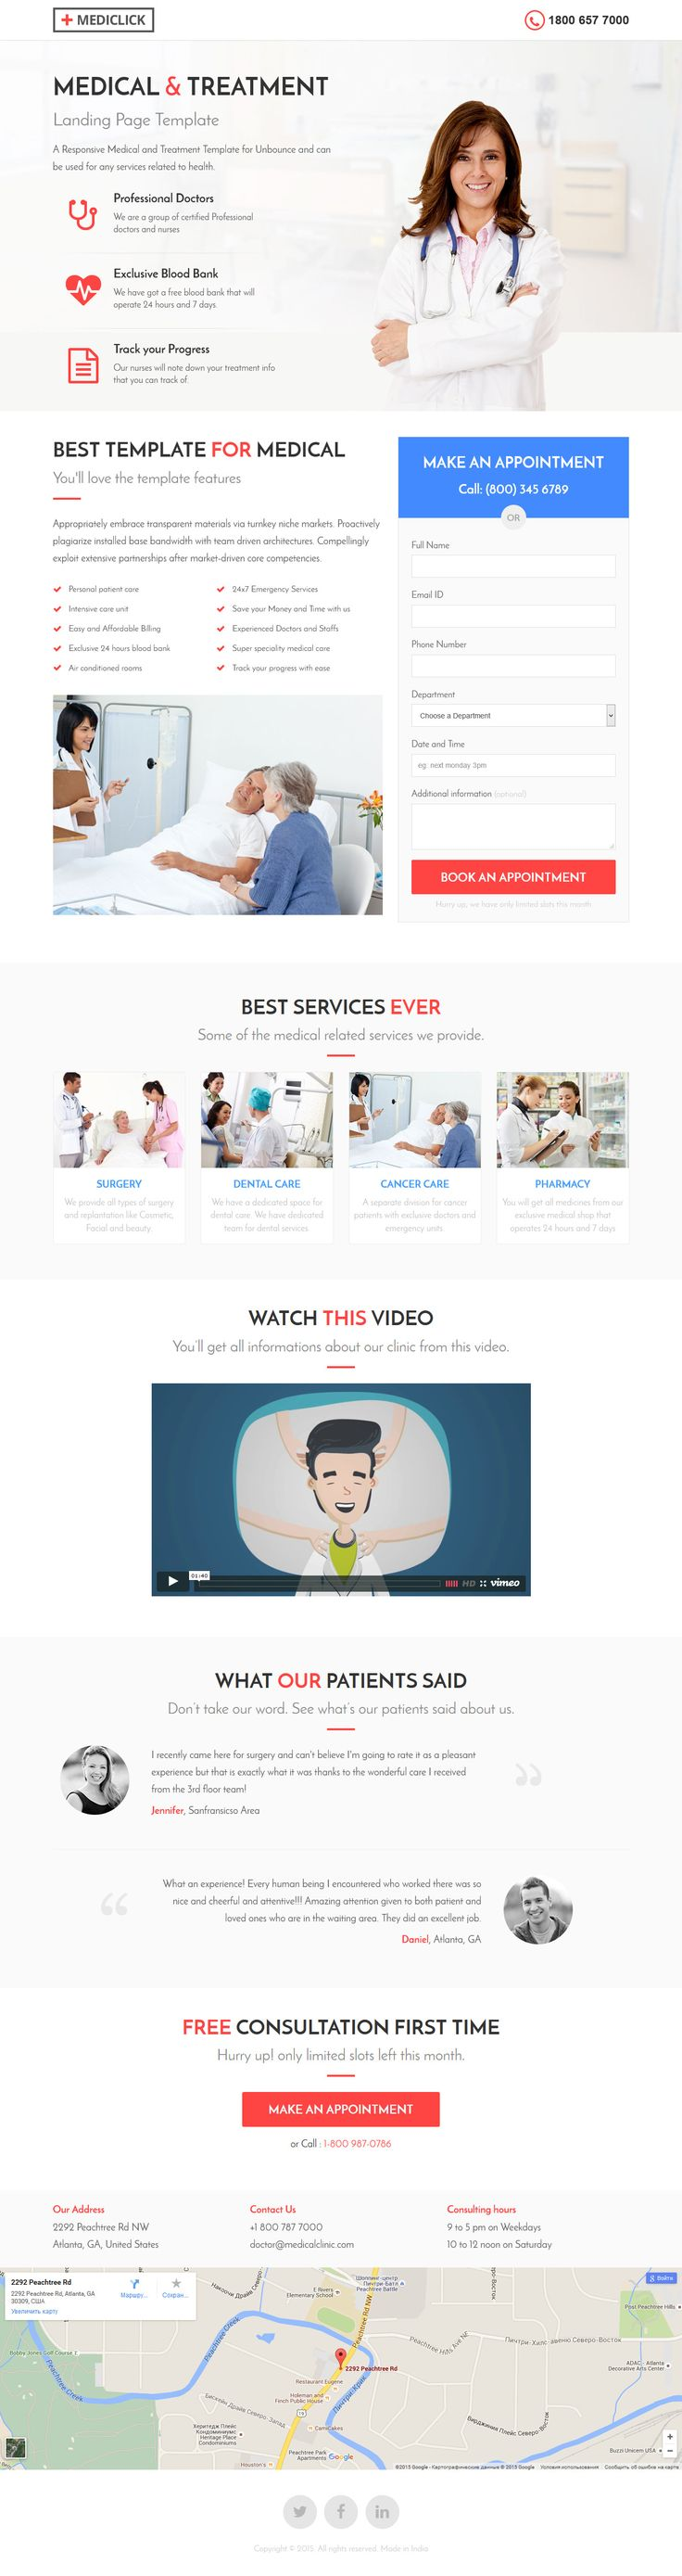 Medical, Spa, Yoga & Fitness Landing Page Template #website Download: http://themeforest.net/item/medical-spa-yoga-fitness-landing-page-template/13386341?ref=ksioks